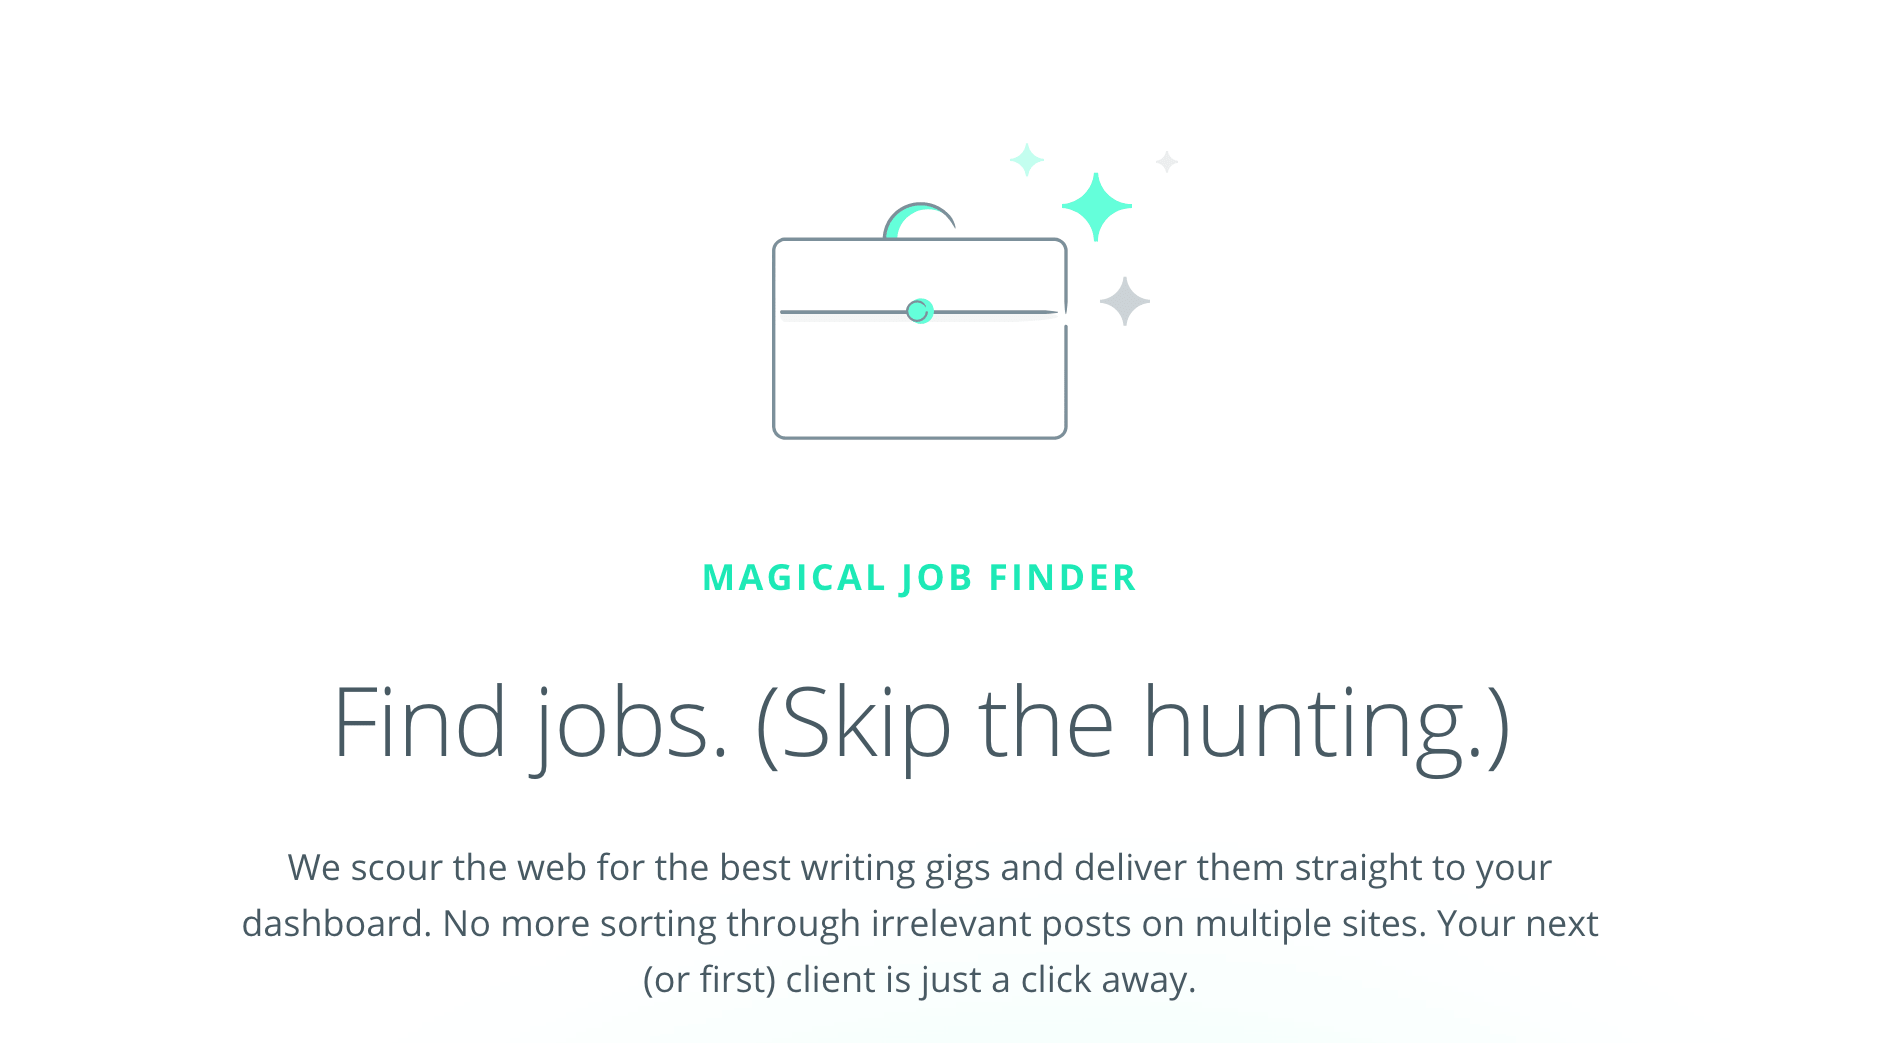 writers-work-review-find-jobs